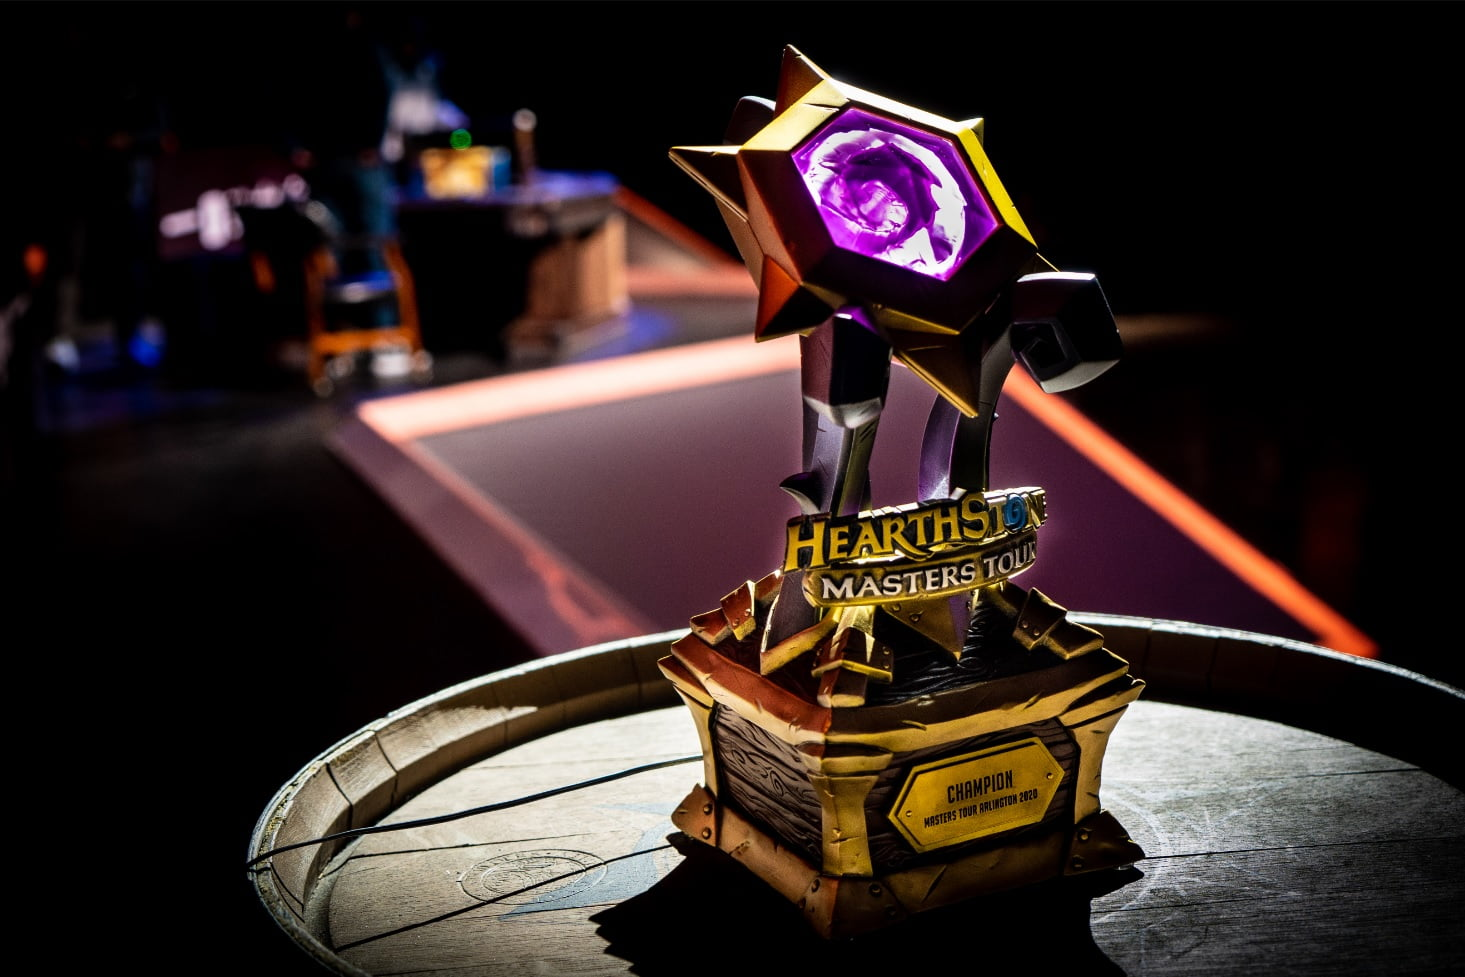 Hearthstone World Championship 2020